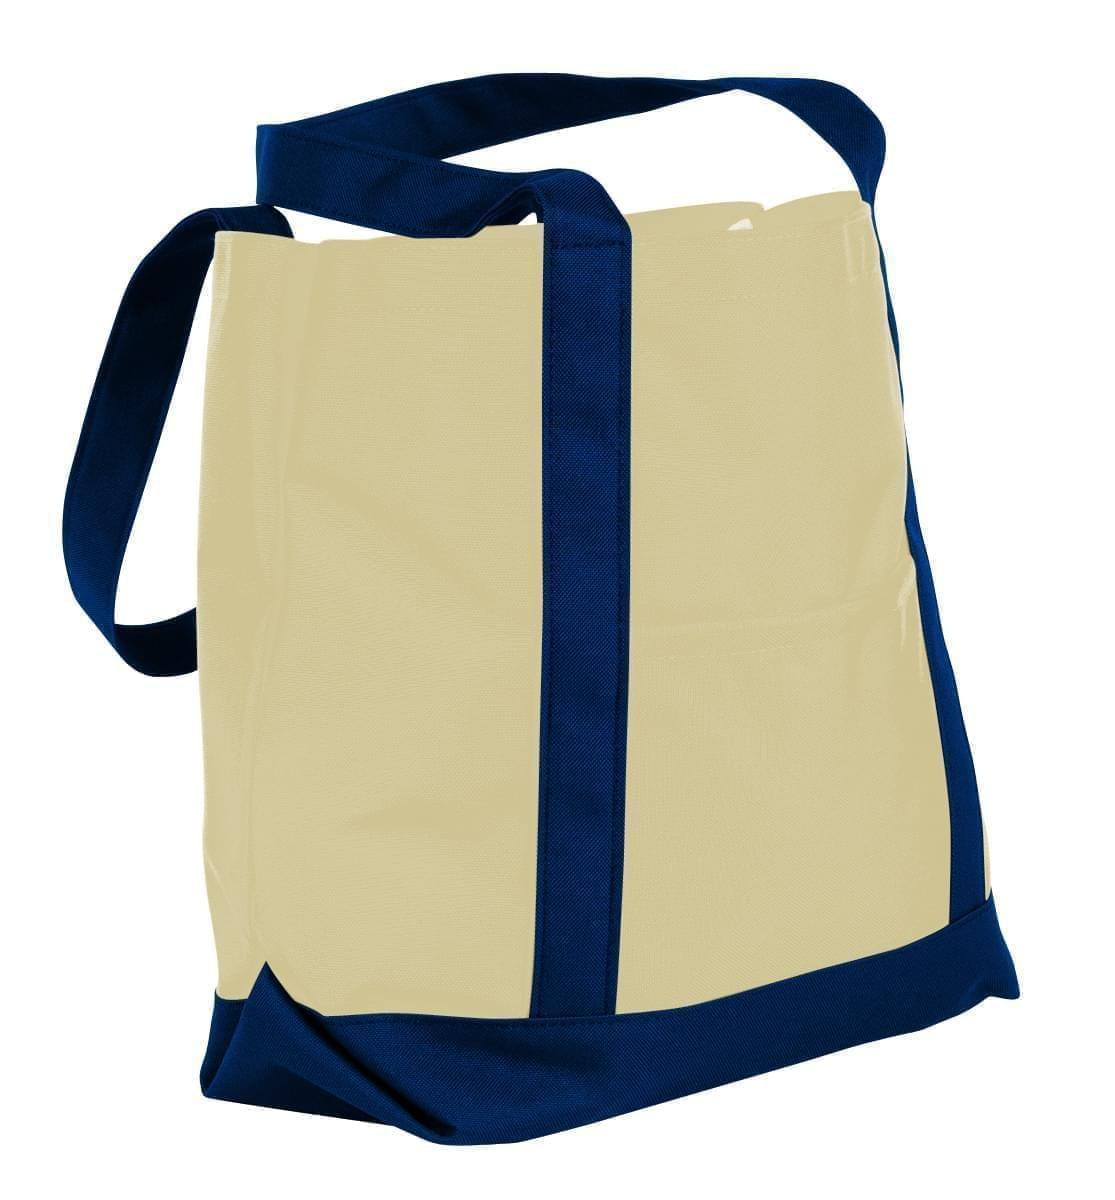 USA Made Canvas Fashion Tote Bags, Natural-Navy, XAACL1UAKI